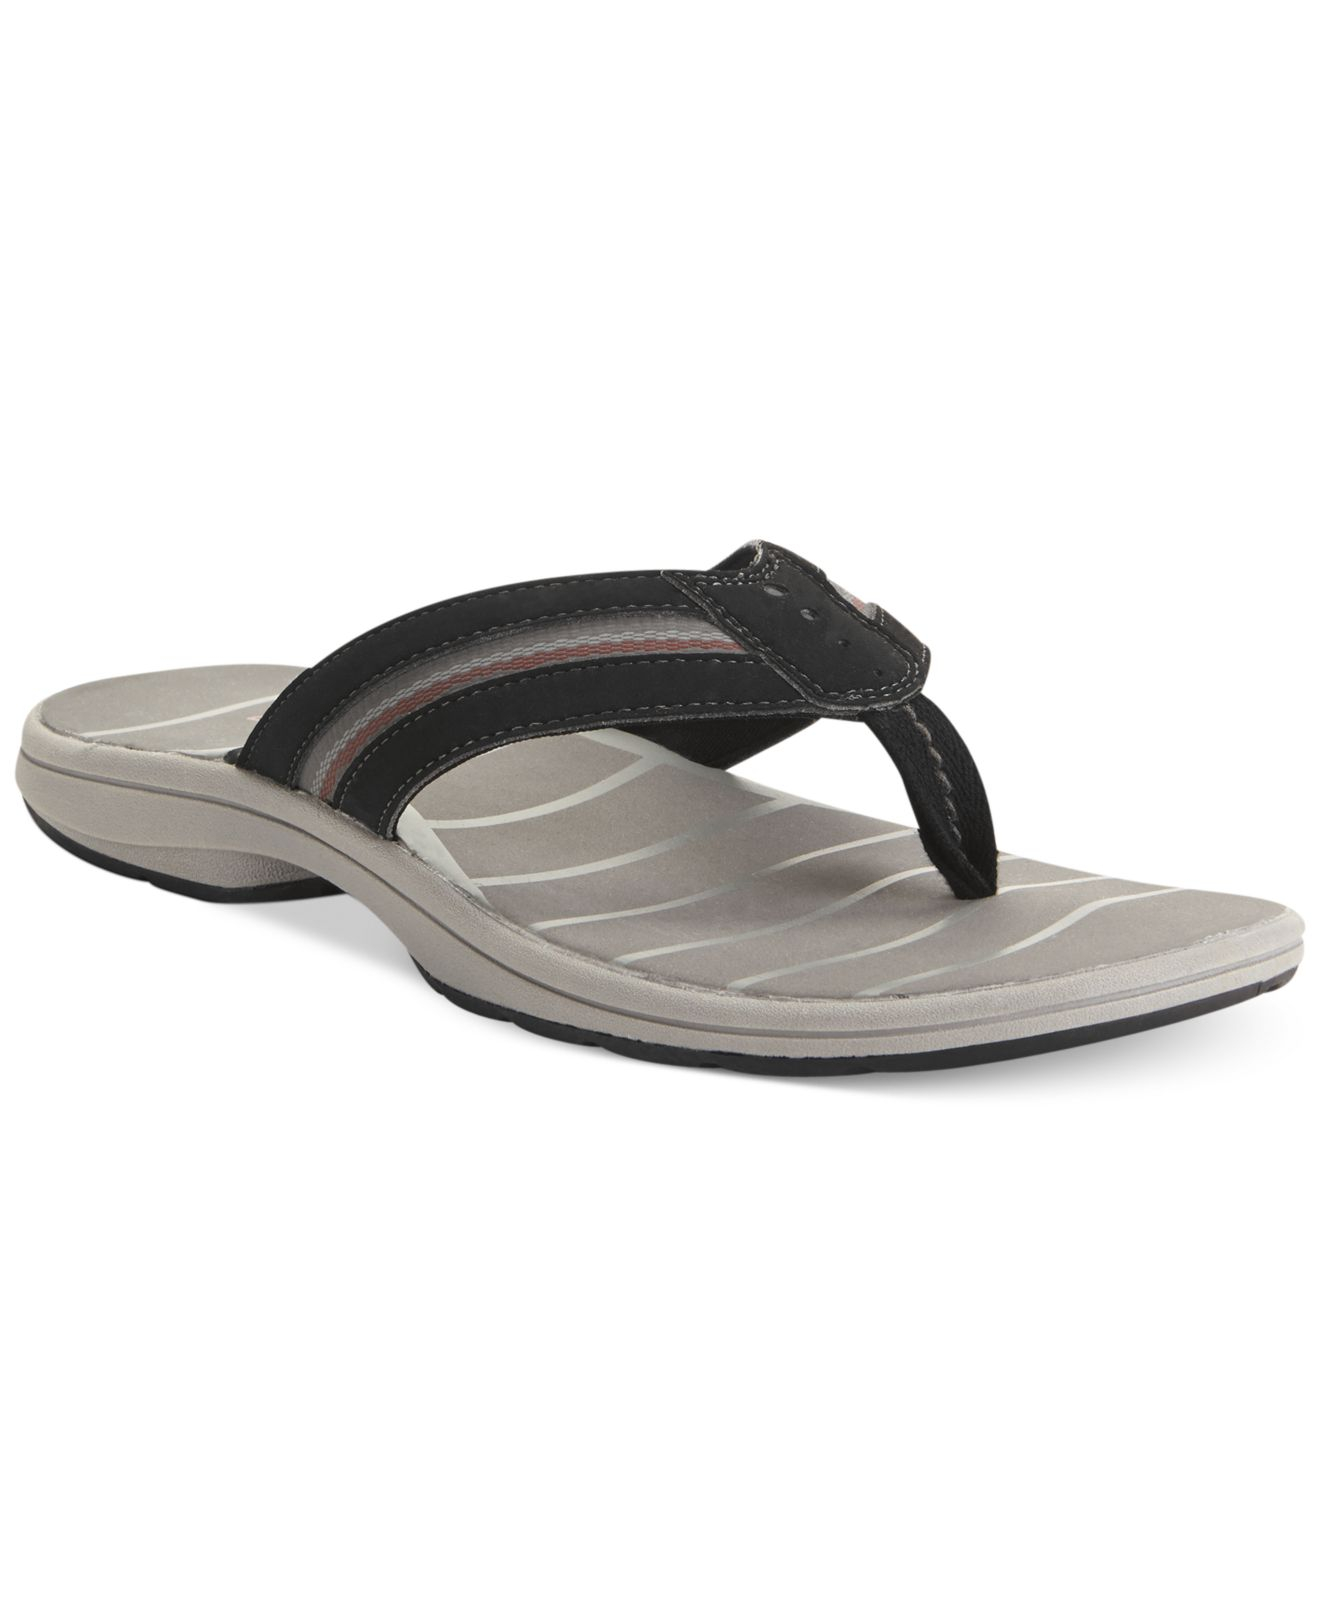 09ced57e54a3ab Lyst - Clarks Whelkie Beach Sandals in Black for Men